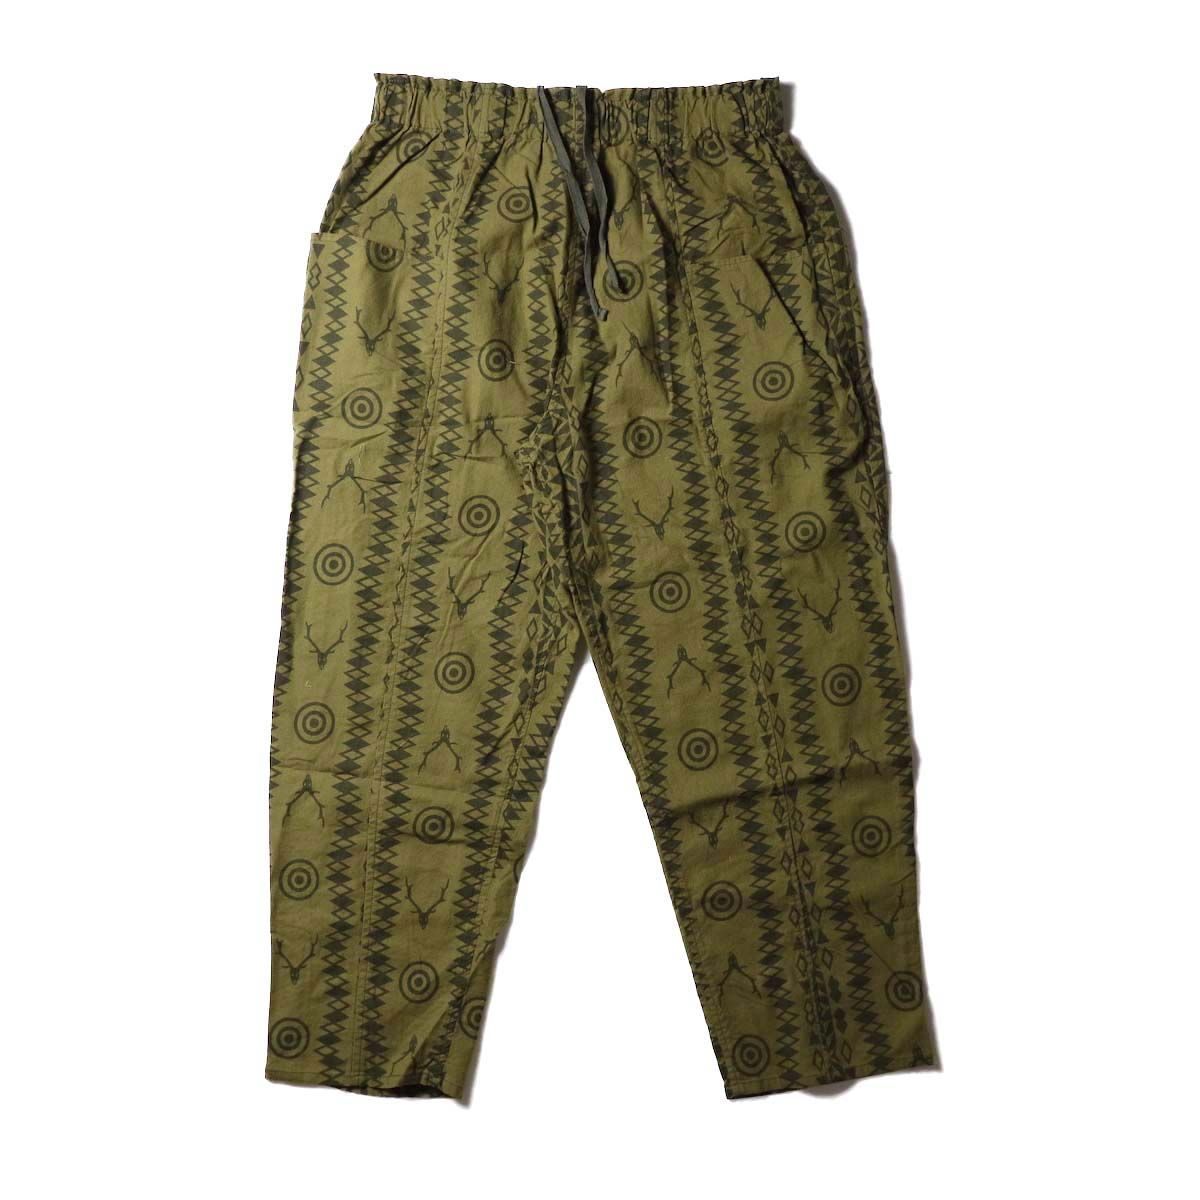 SOUTH2 WEST8 / Army String Pant -Flannel Pt. (Skull&Target)